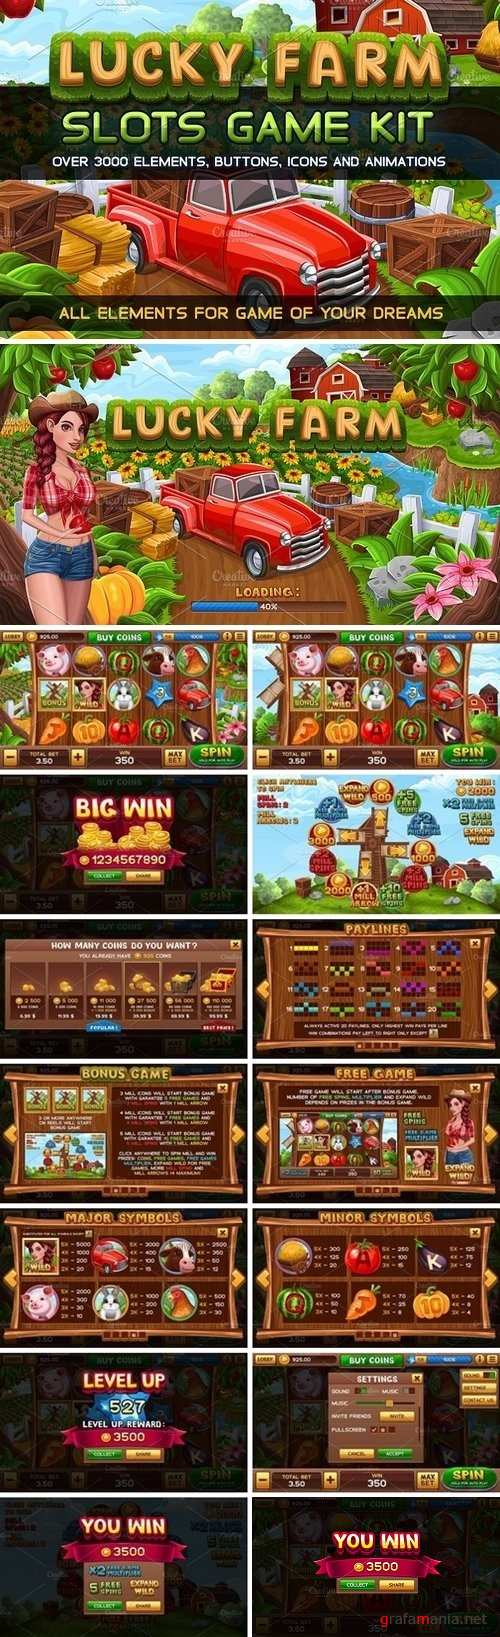 Lucky Farm Slots Game KIT - 1569915